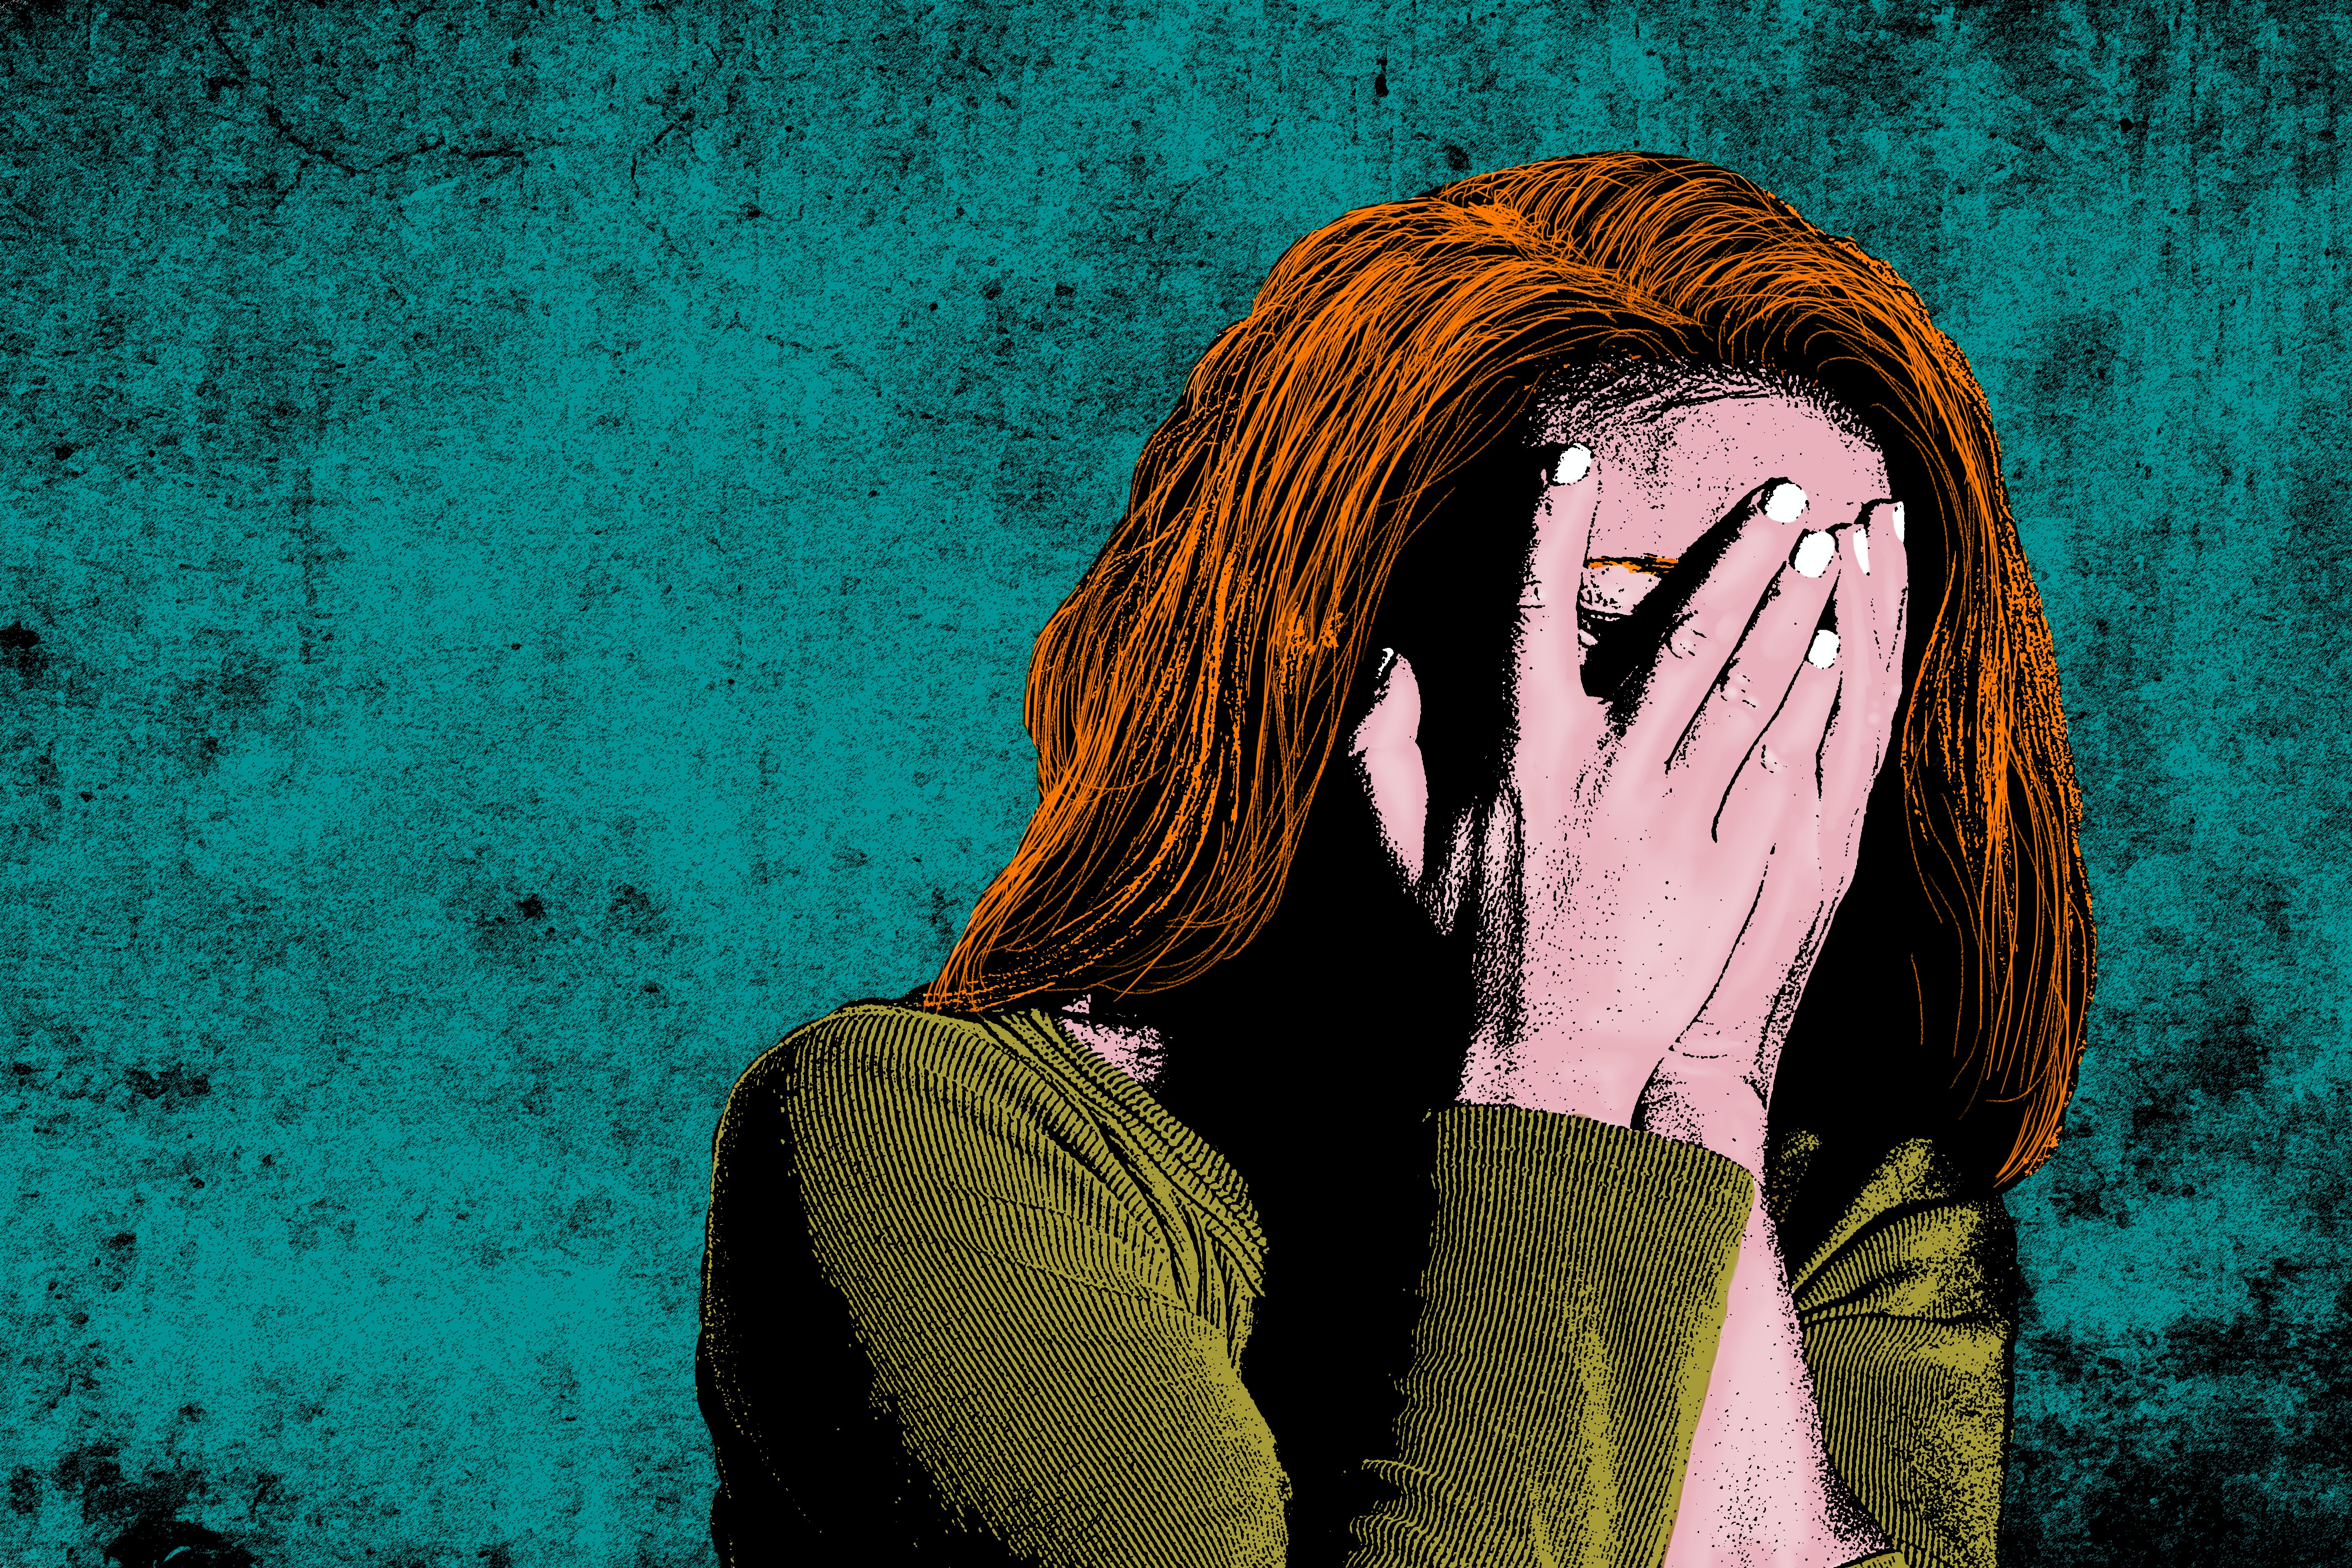 The mental health crisis among America's youth is real – and staggering